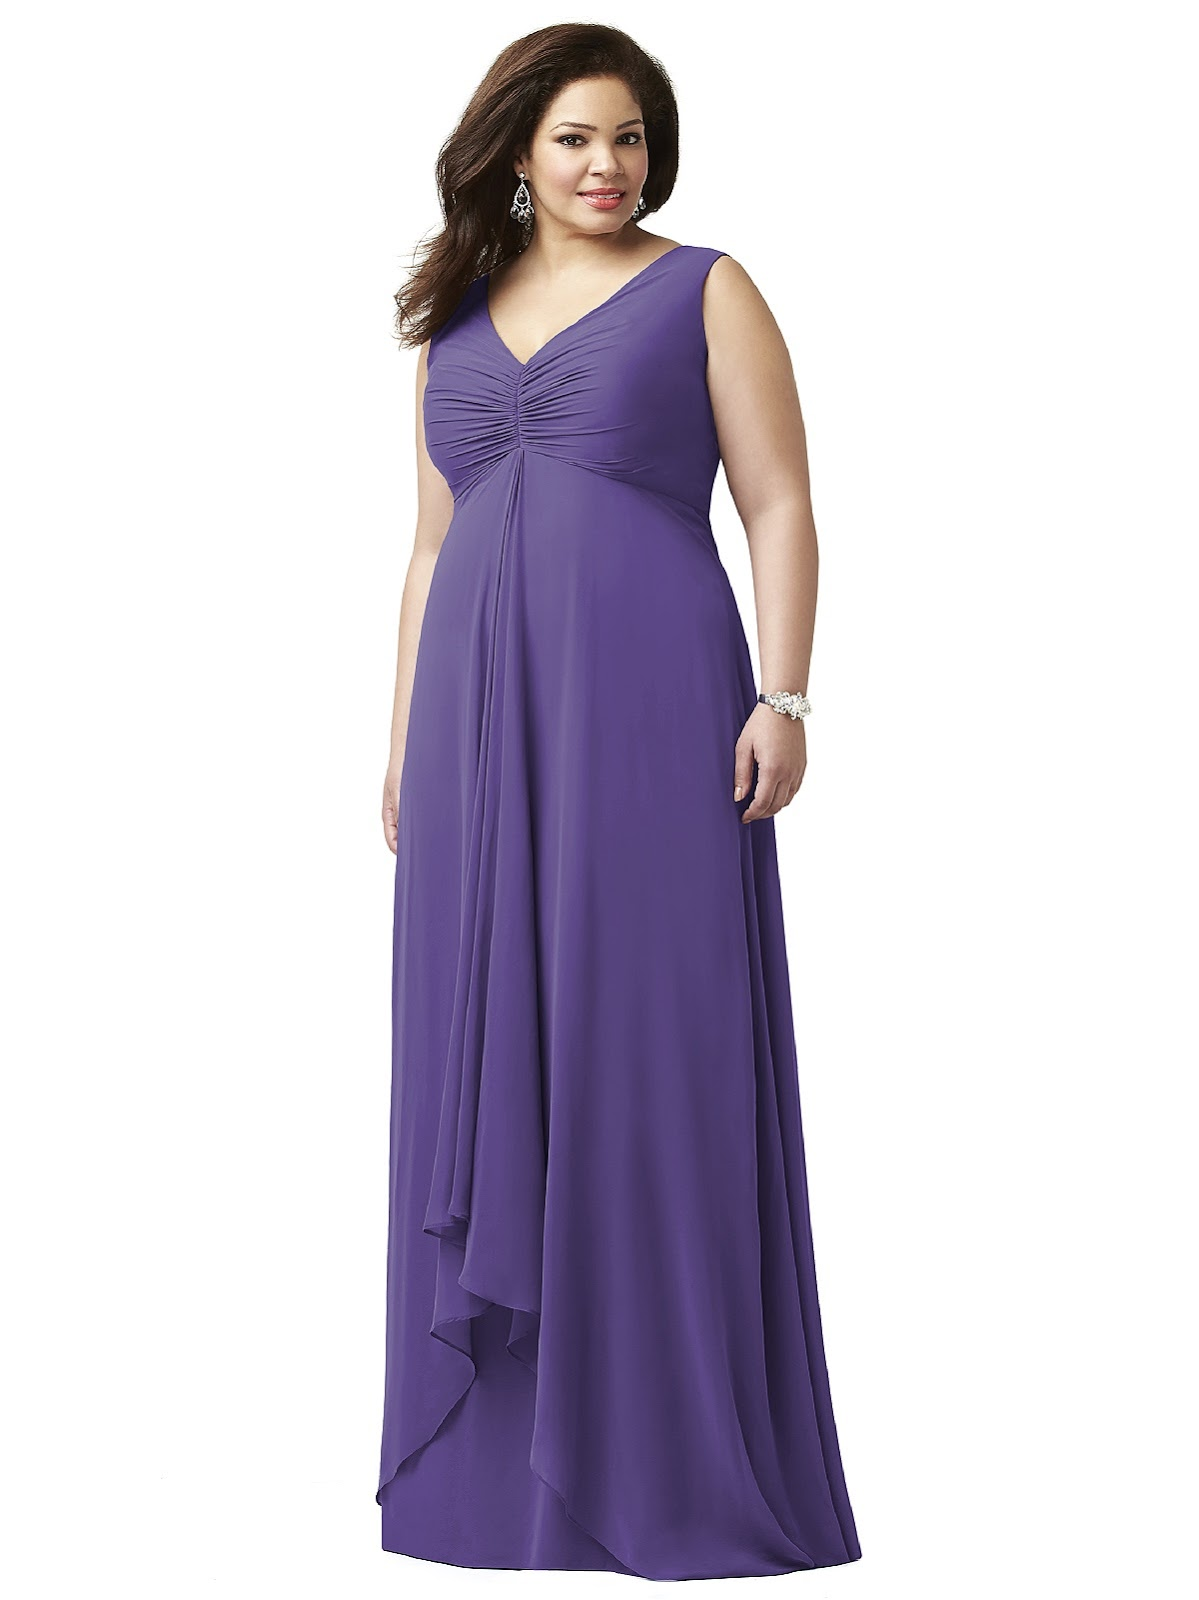 07839b1d9f Why You Should Consider Purple Plus Size Bridesmaid Dresses